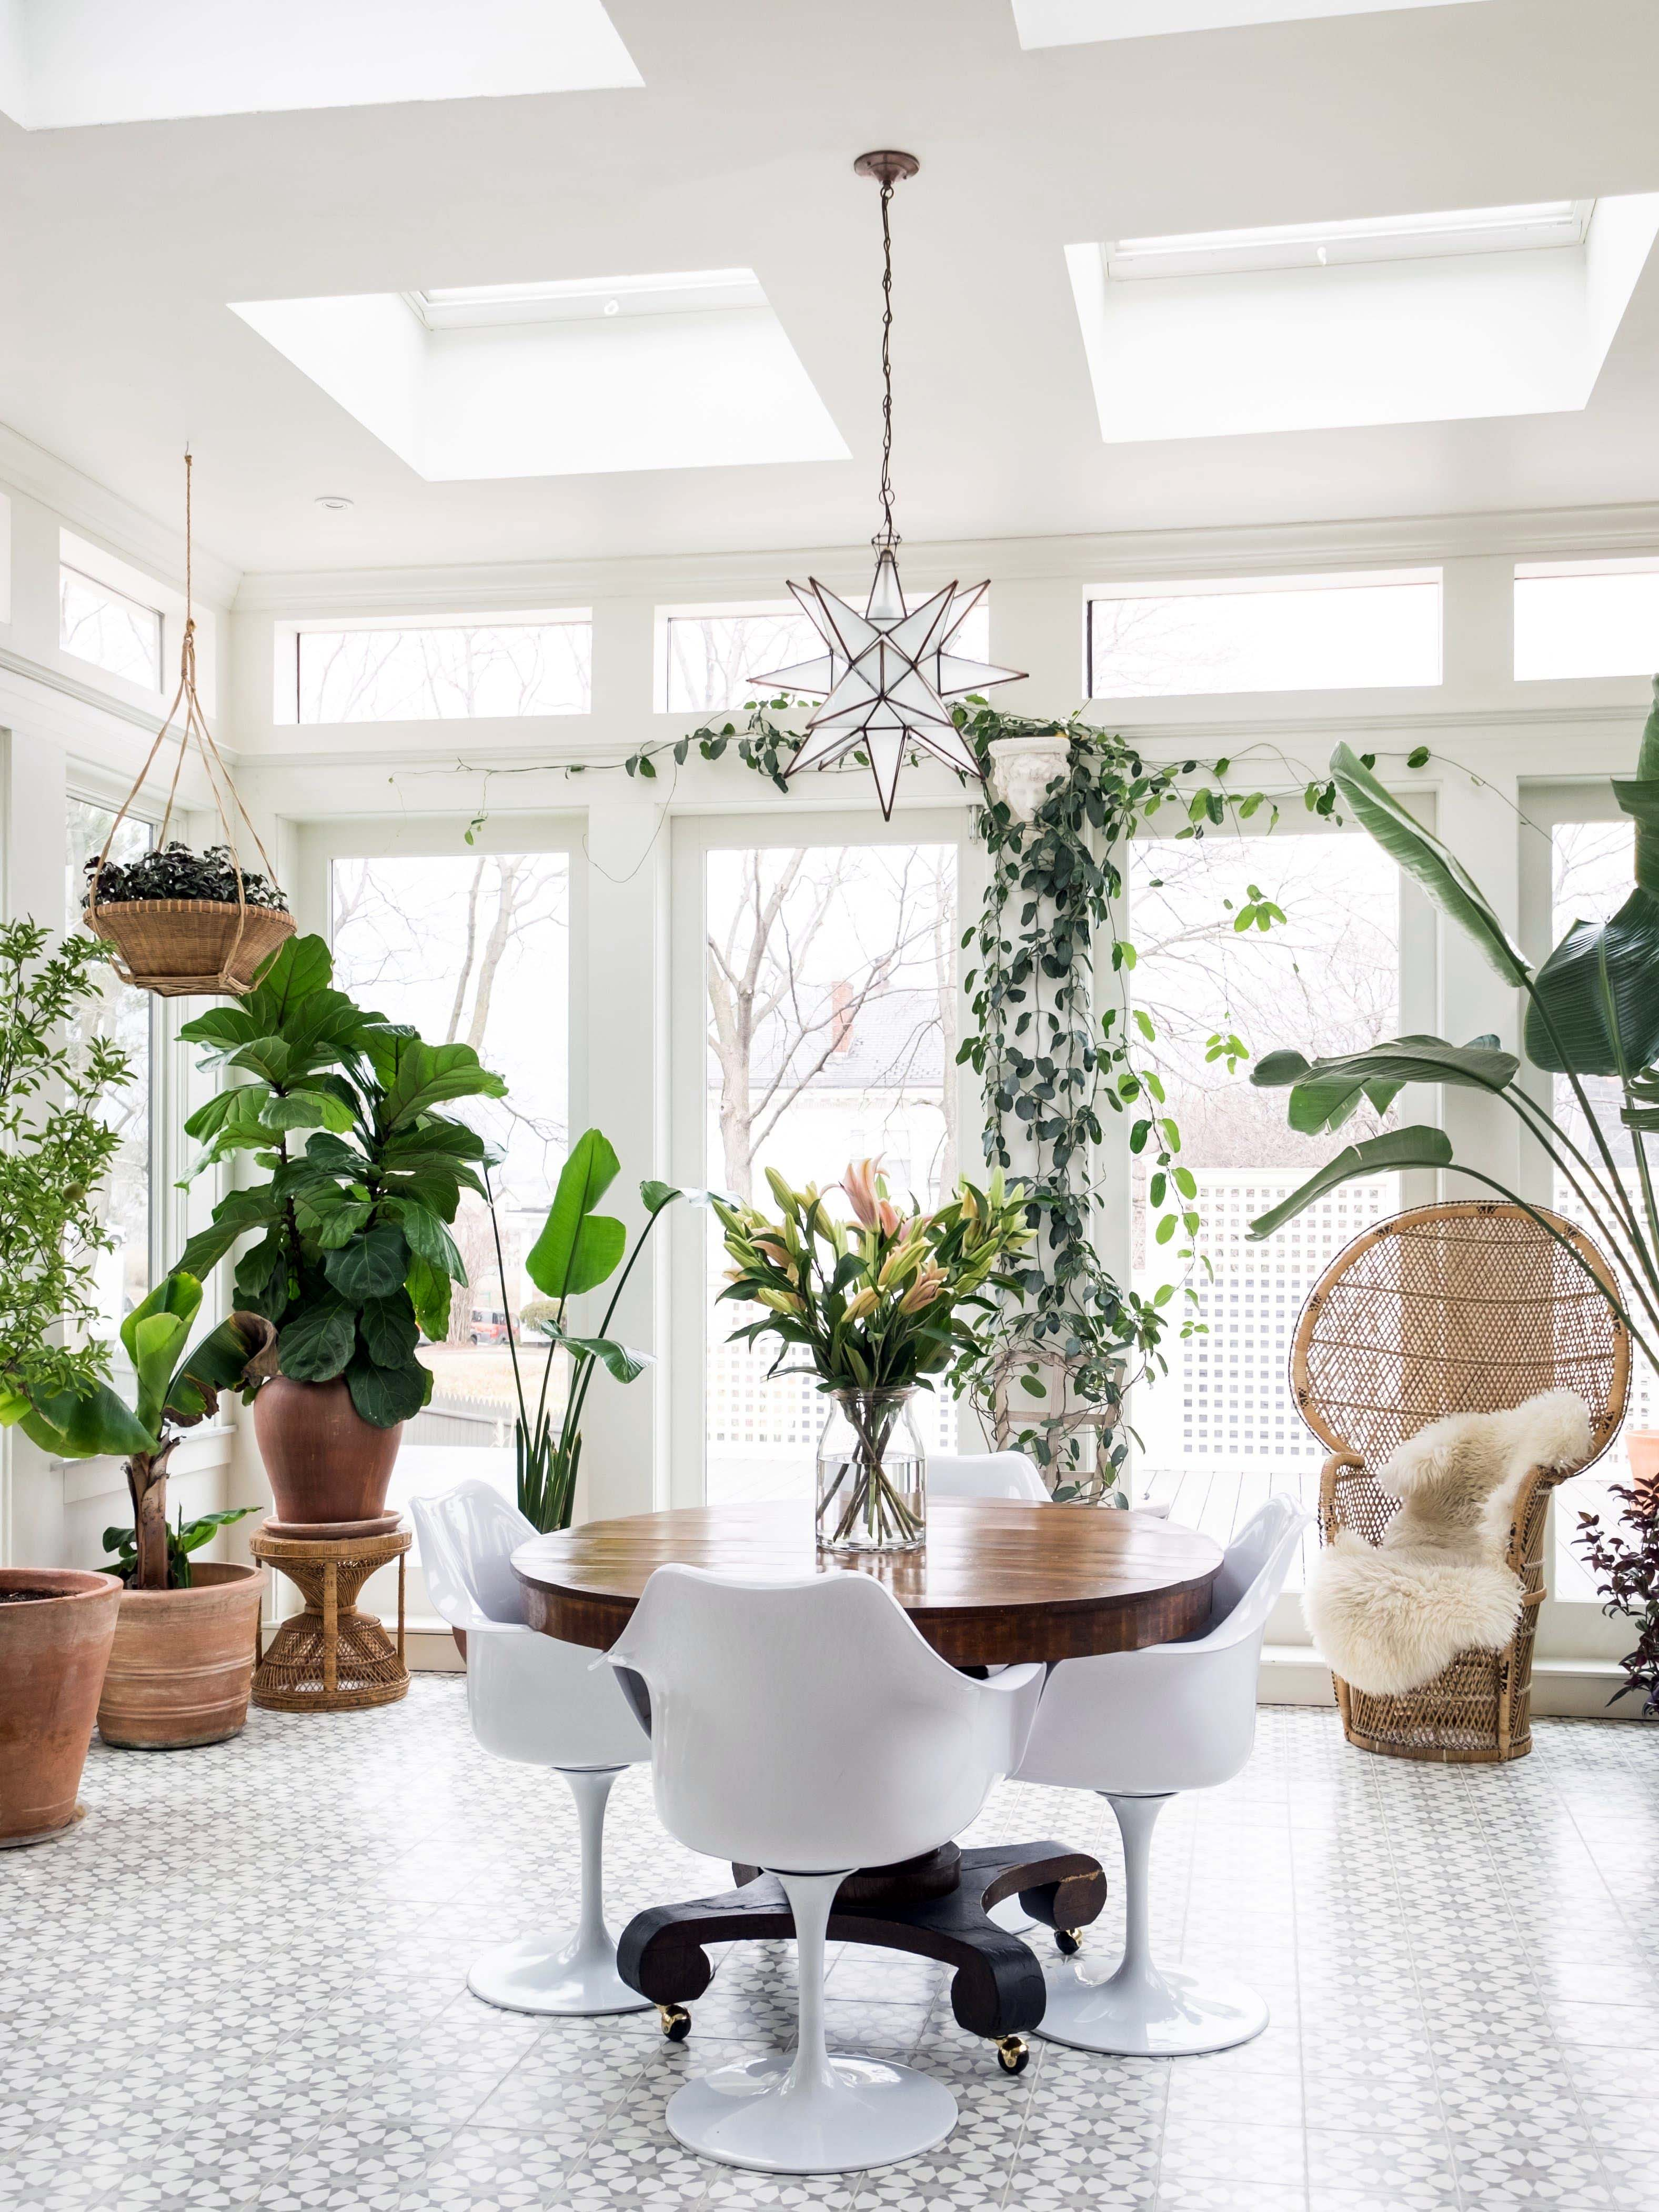 sunroom ideas on a budget top sunroom designs on a budget